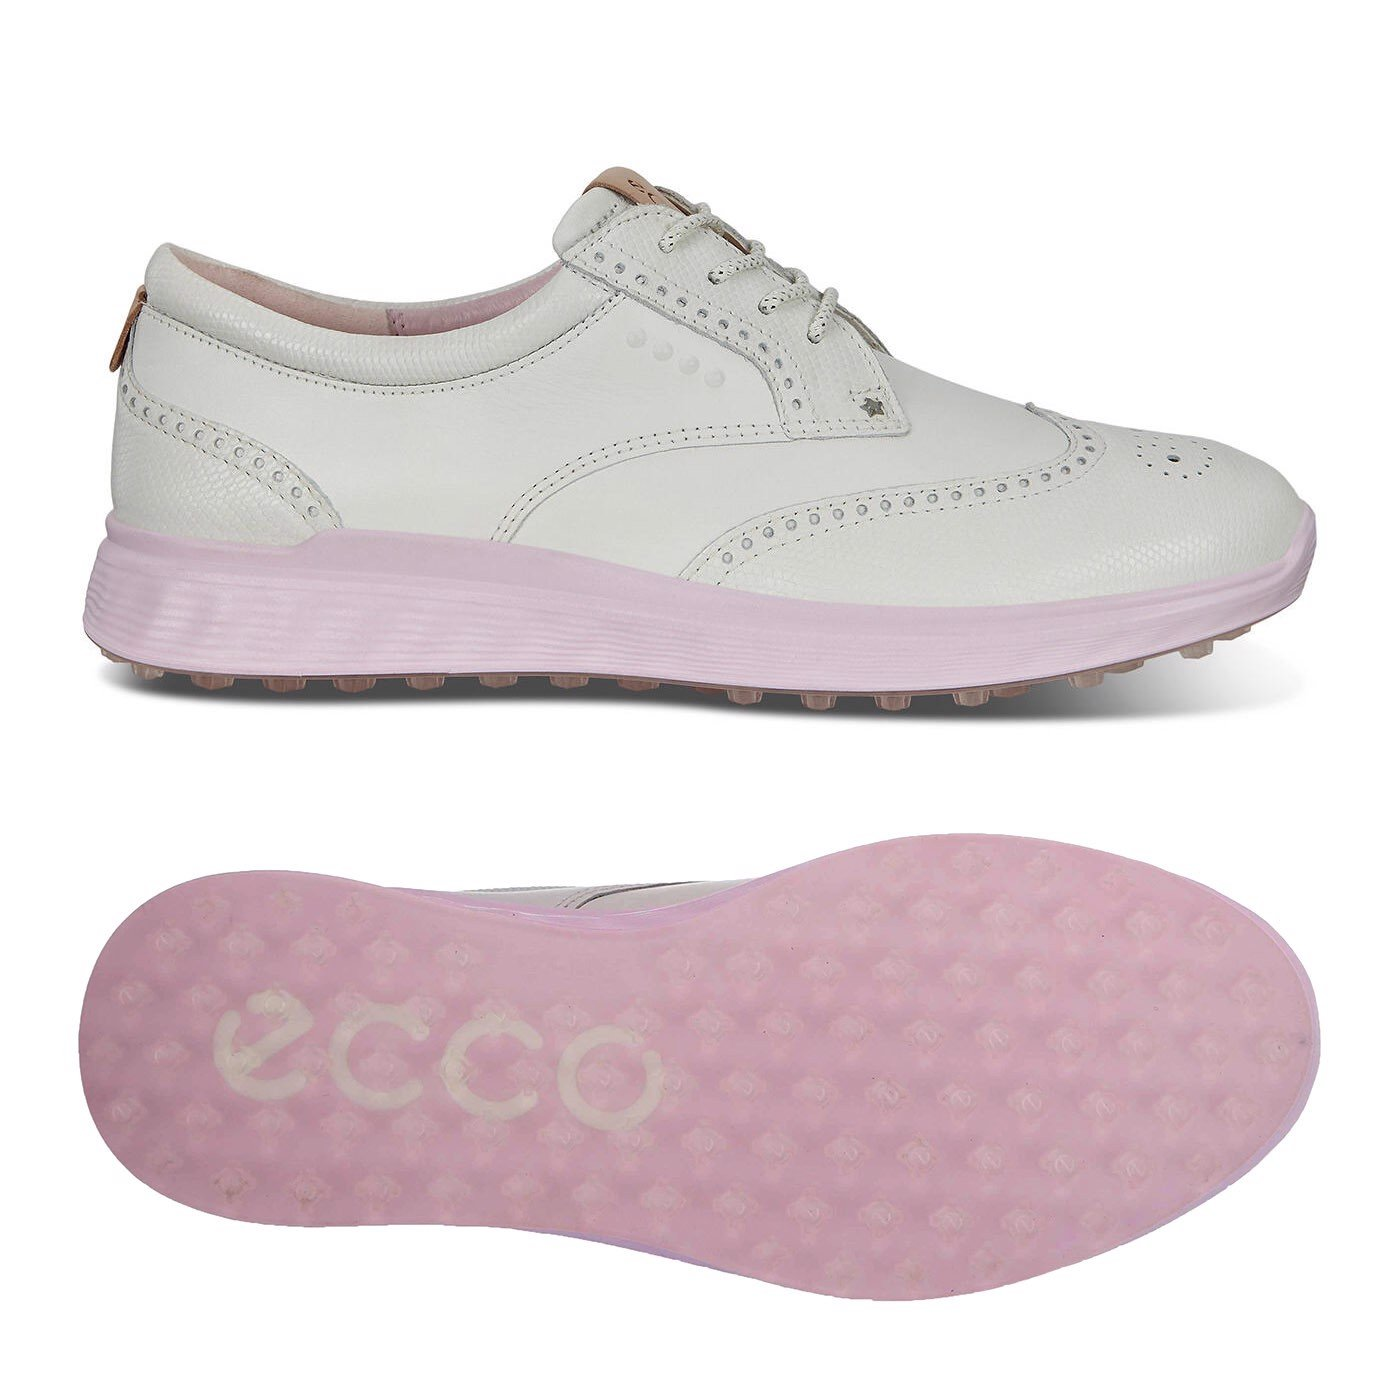 Giày golf nữ Spikeless S-Classic 102703-01007 | ECCO